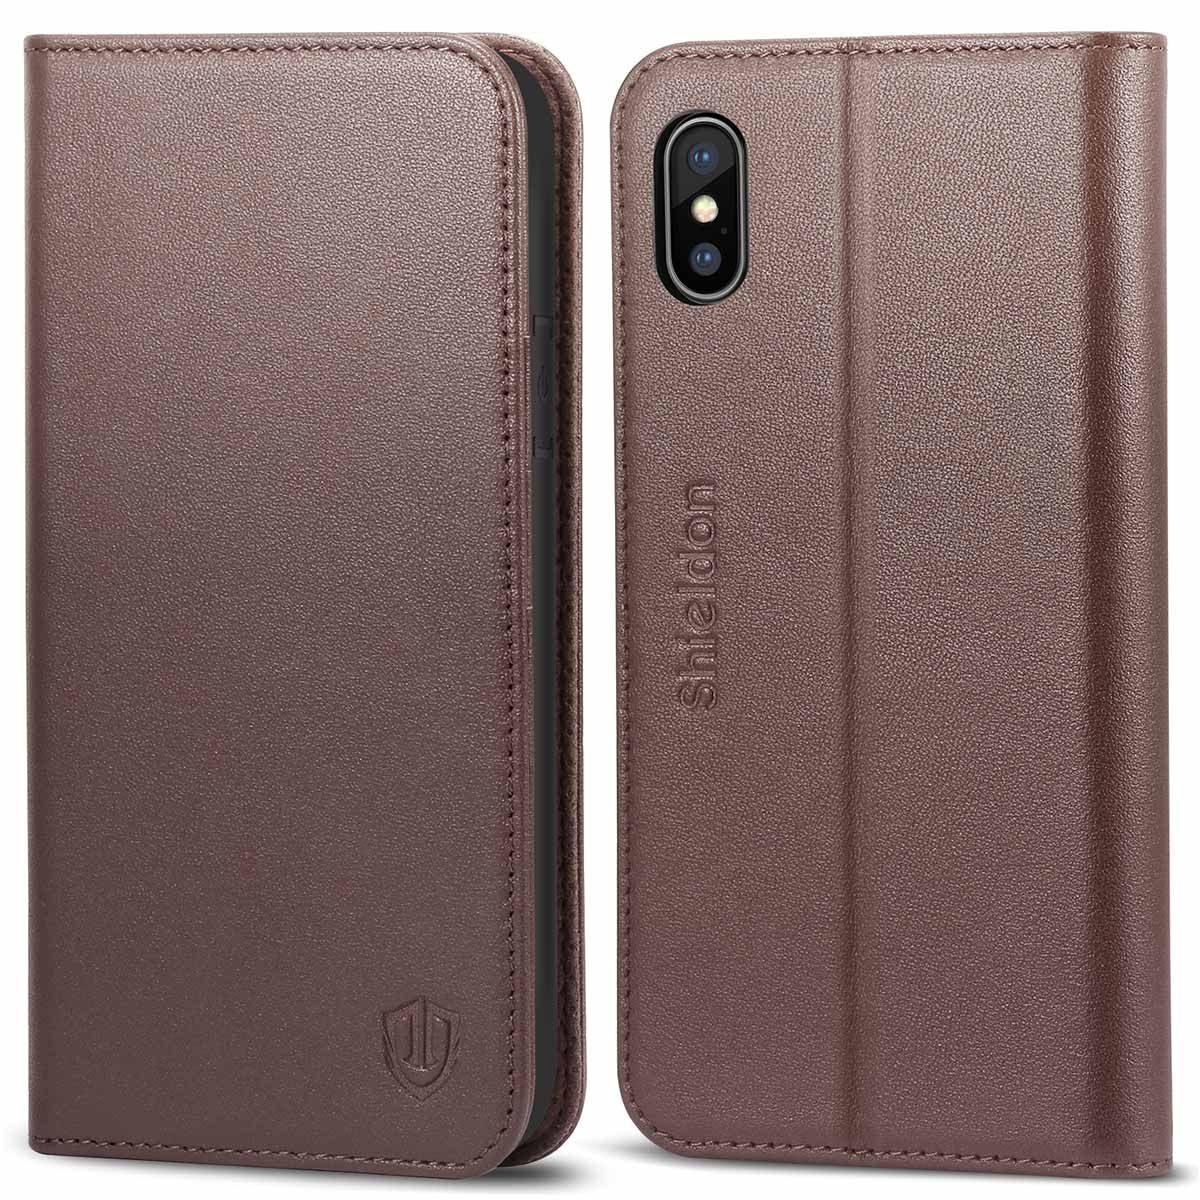 reputable site 1cbed 93f92 SHIELDON iPhone X Genuine Leather Flip Cover, Kickstand, Magnetic Closure